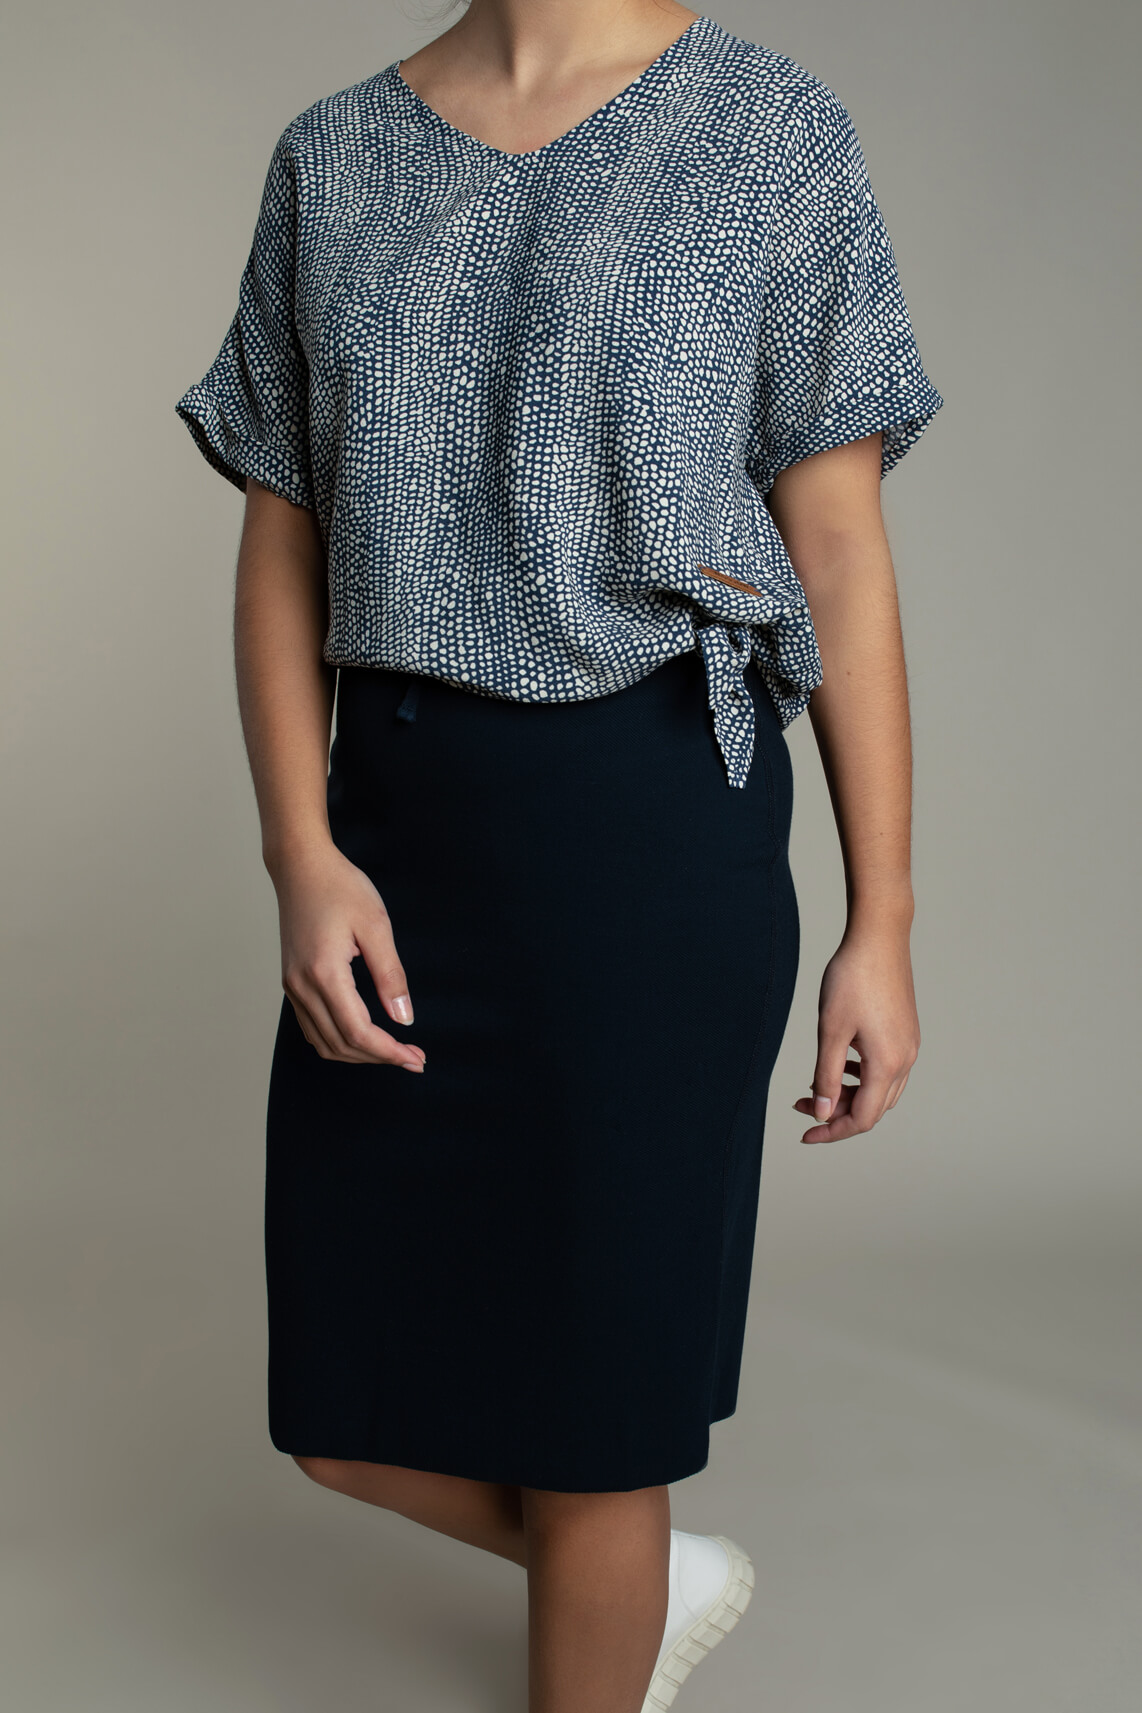 Moscow Dames Lindy blouse met knoopdetail Blauw